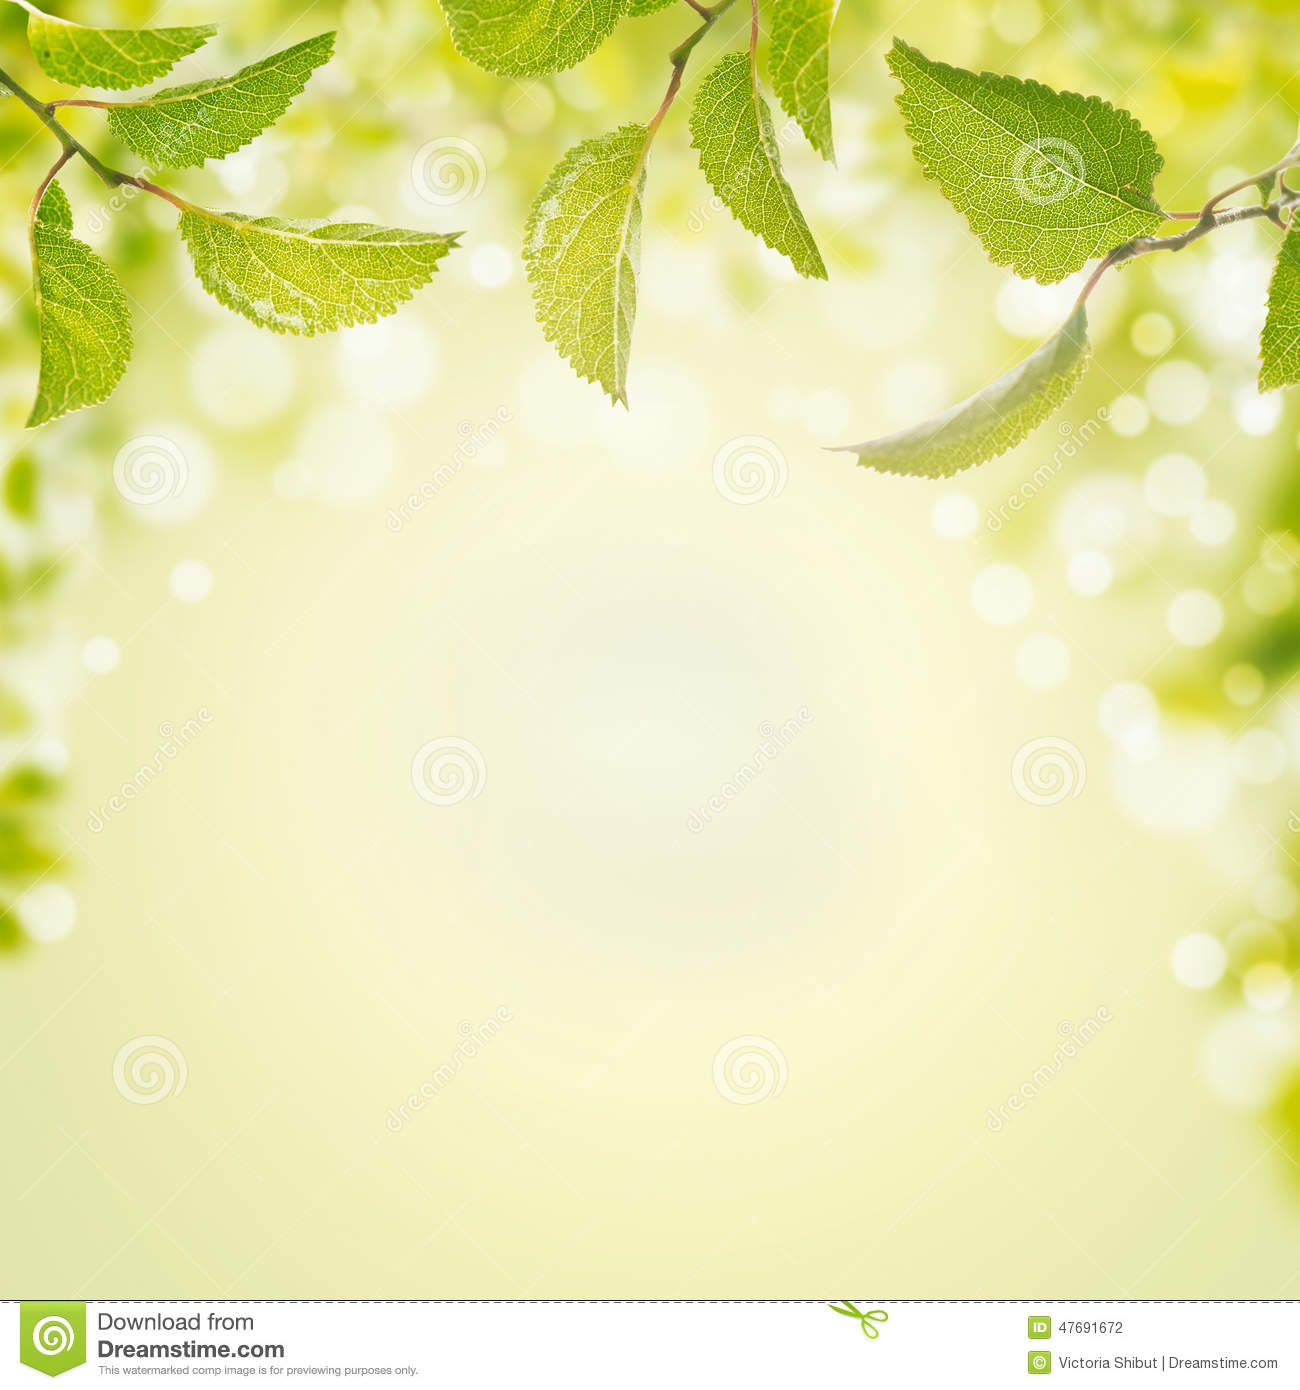 light green leaves background - photo #22